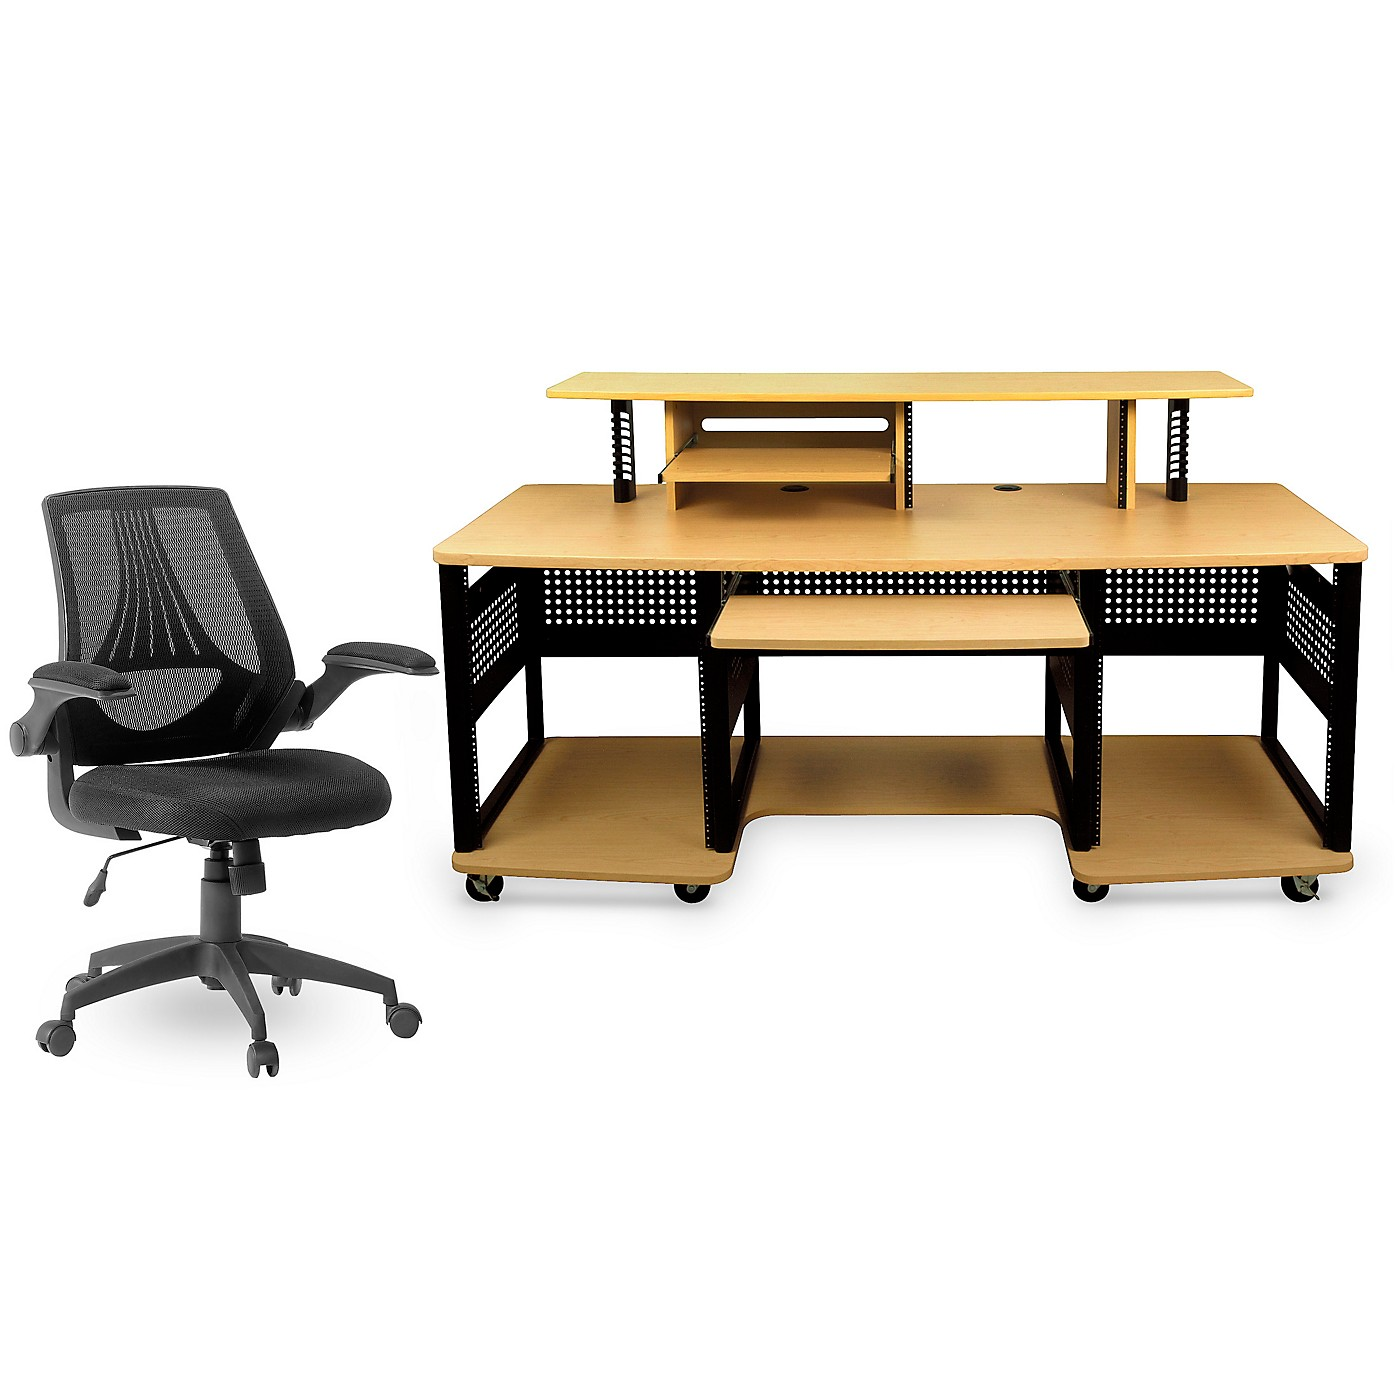 Studio RTA Producer Station Maple and Mesh Managers Office Chair Bundle thumbnail